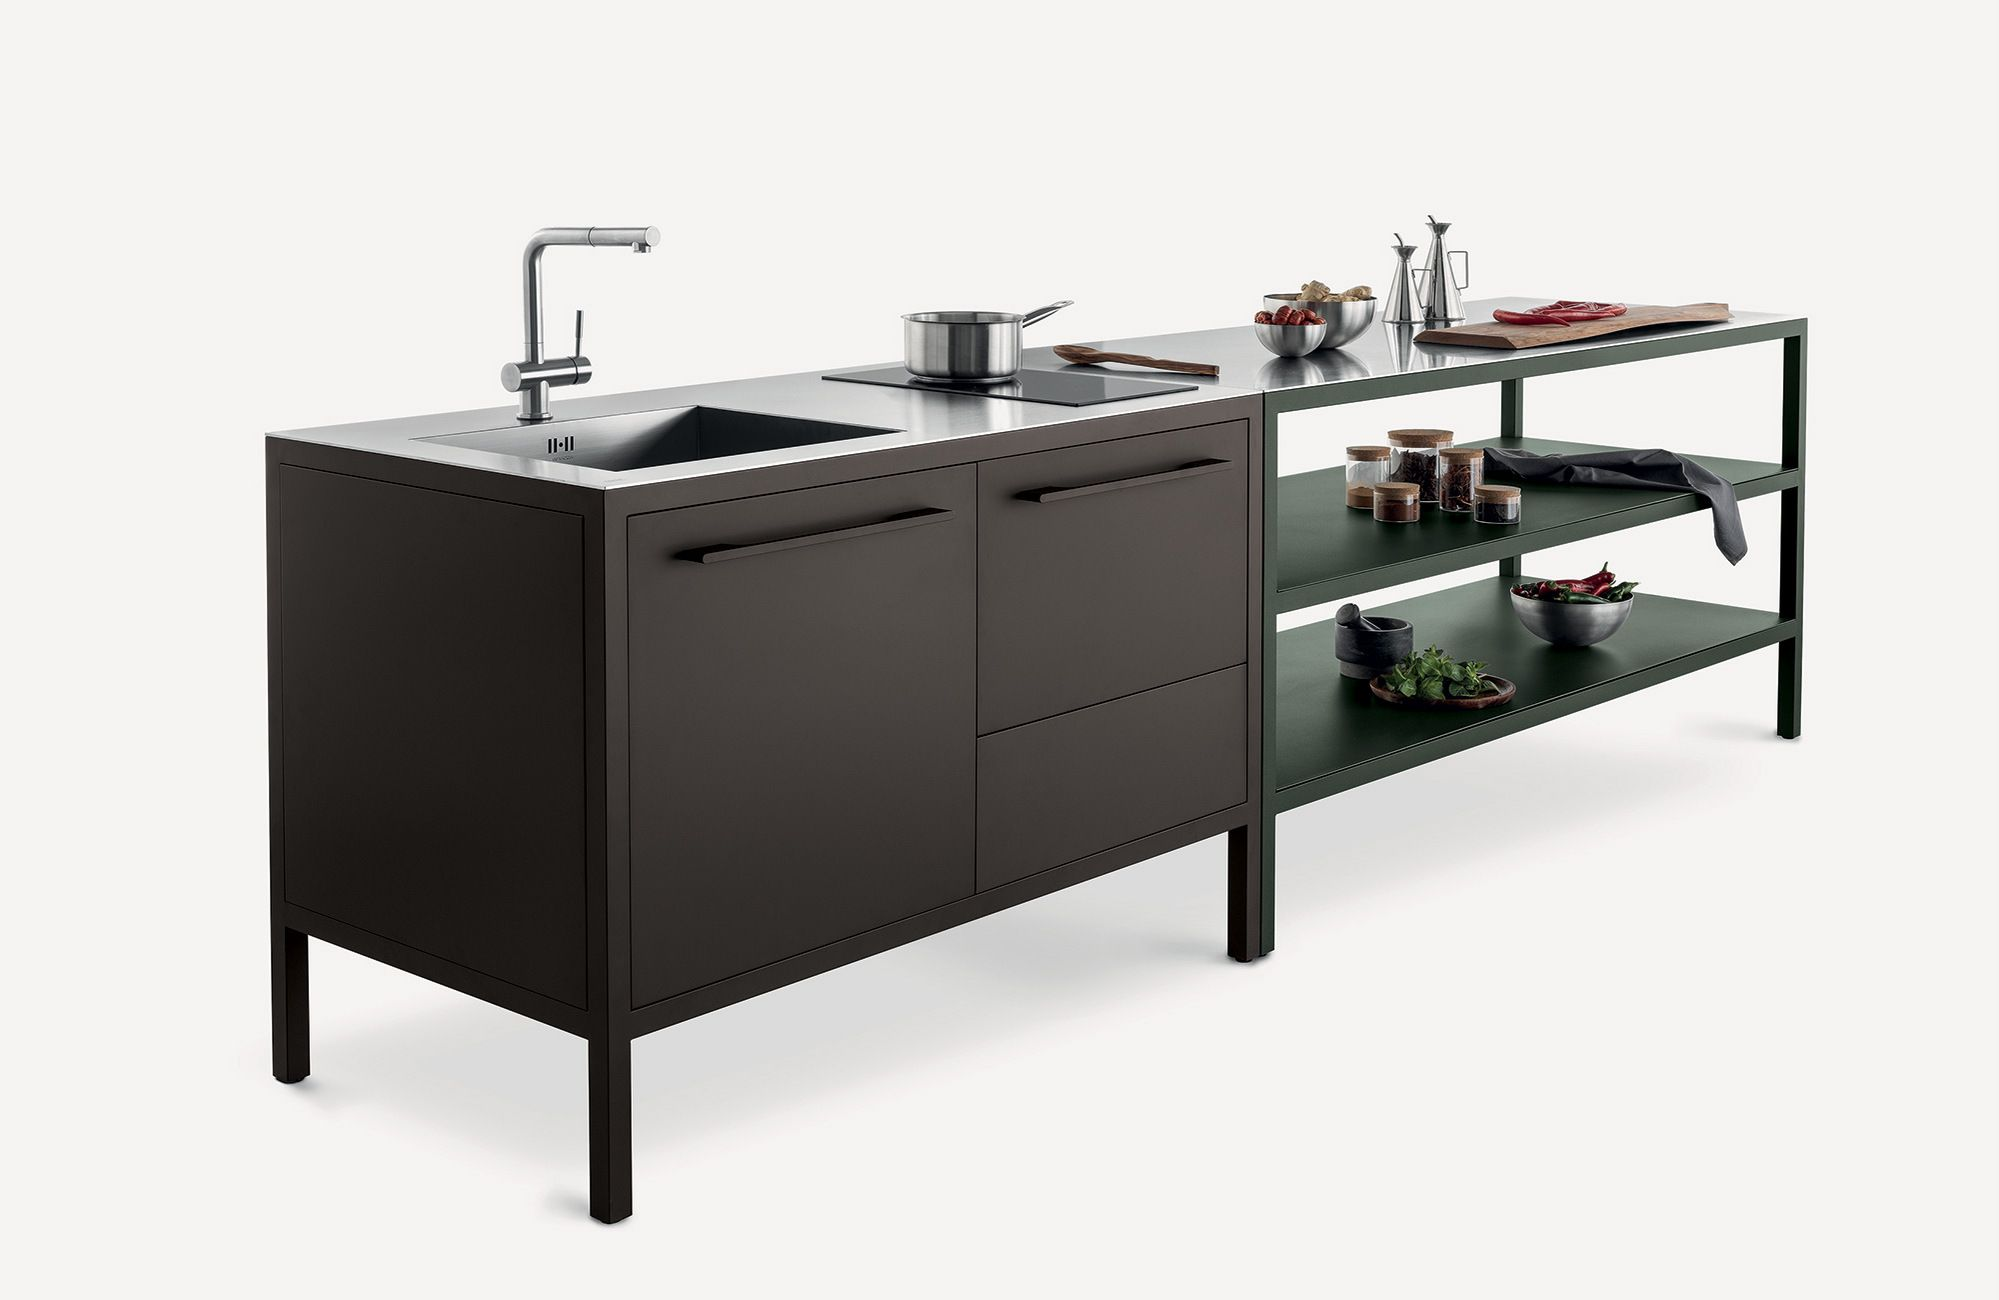 Metal Mini Kitchen With Handles Frame Kitchen 2 Units Frame Collection By Fantin Design Salvatore Indr In 2020 Mini Kitchen Metal Kitchen Big Green Egg Outdoor Kitchen